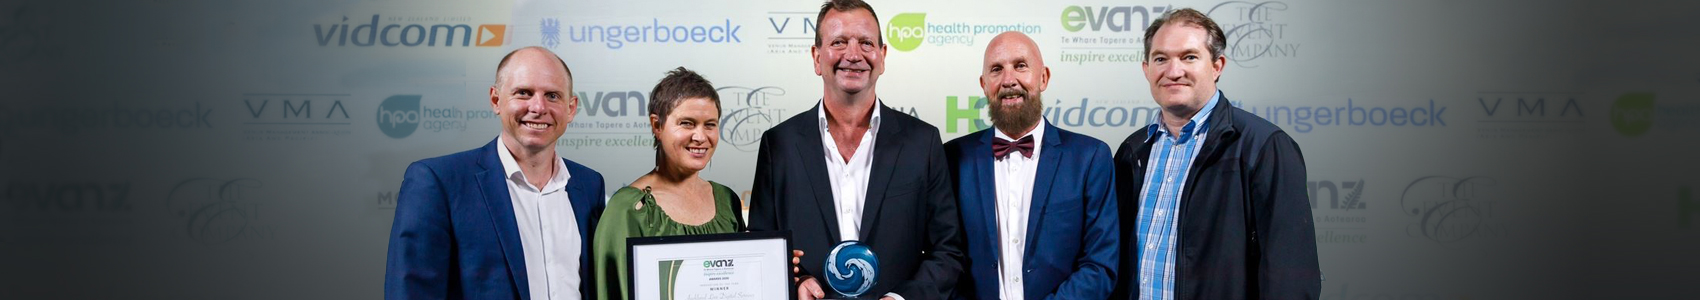 Auckland Live Digital Services named innovation winners